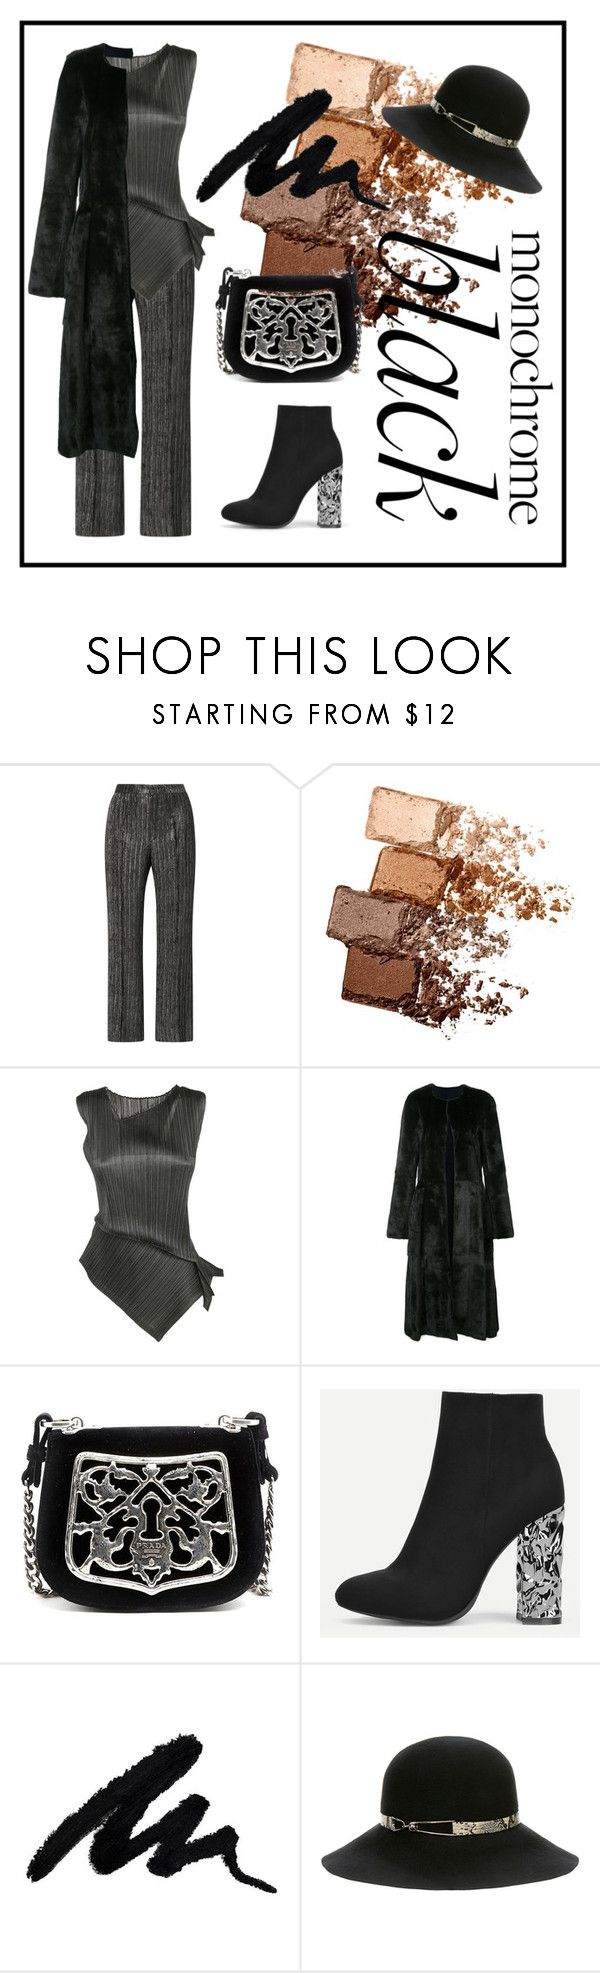 """""""#14 Mission Monochrome: All-Black Outfit"""" by natahaya on Polyvore featuring мода, Isabel Marant, Maybelline, Pleats Please by Issey Miyake, Oscar de la Renta, Prada, Eugenia Kim, monochrome, contest и blackoutfit"""